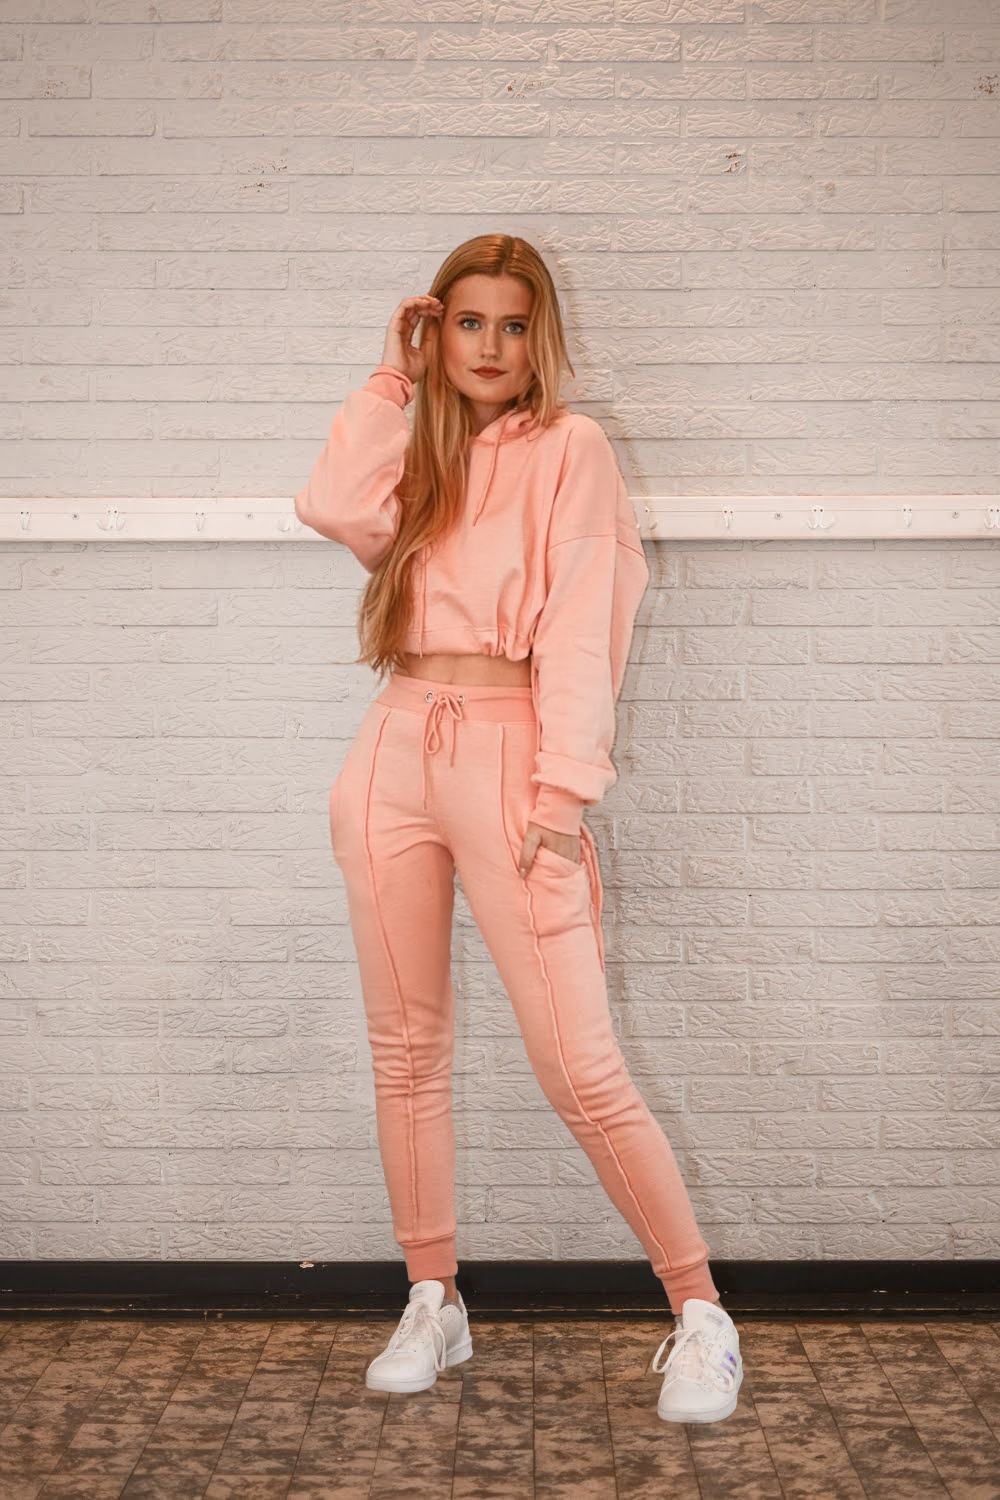 Outfit: Pink Tracksuit